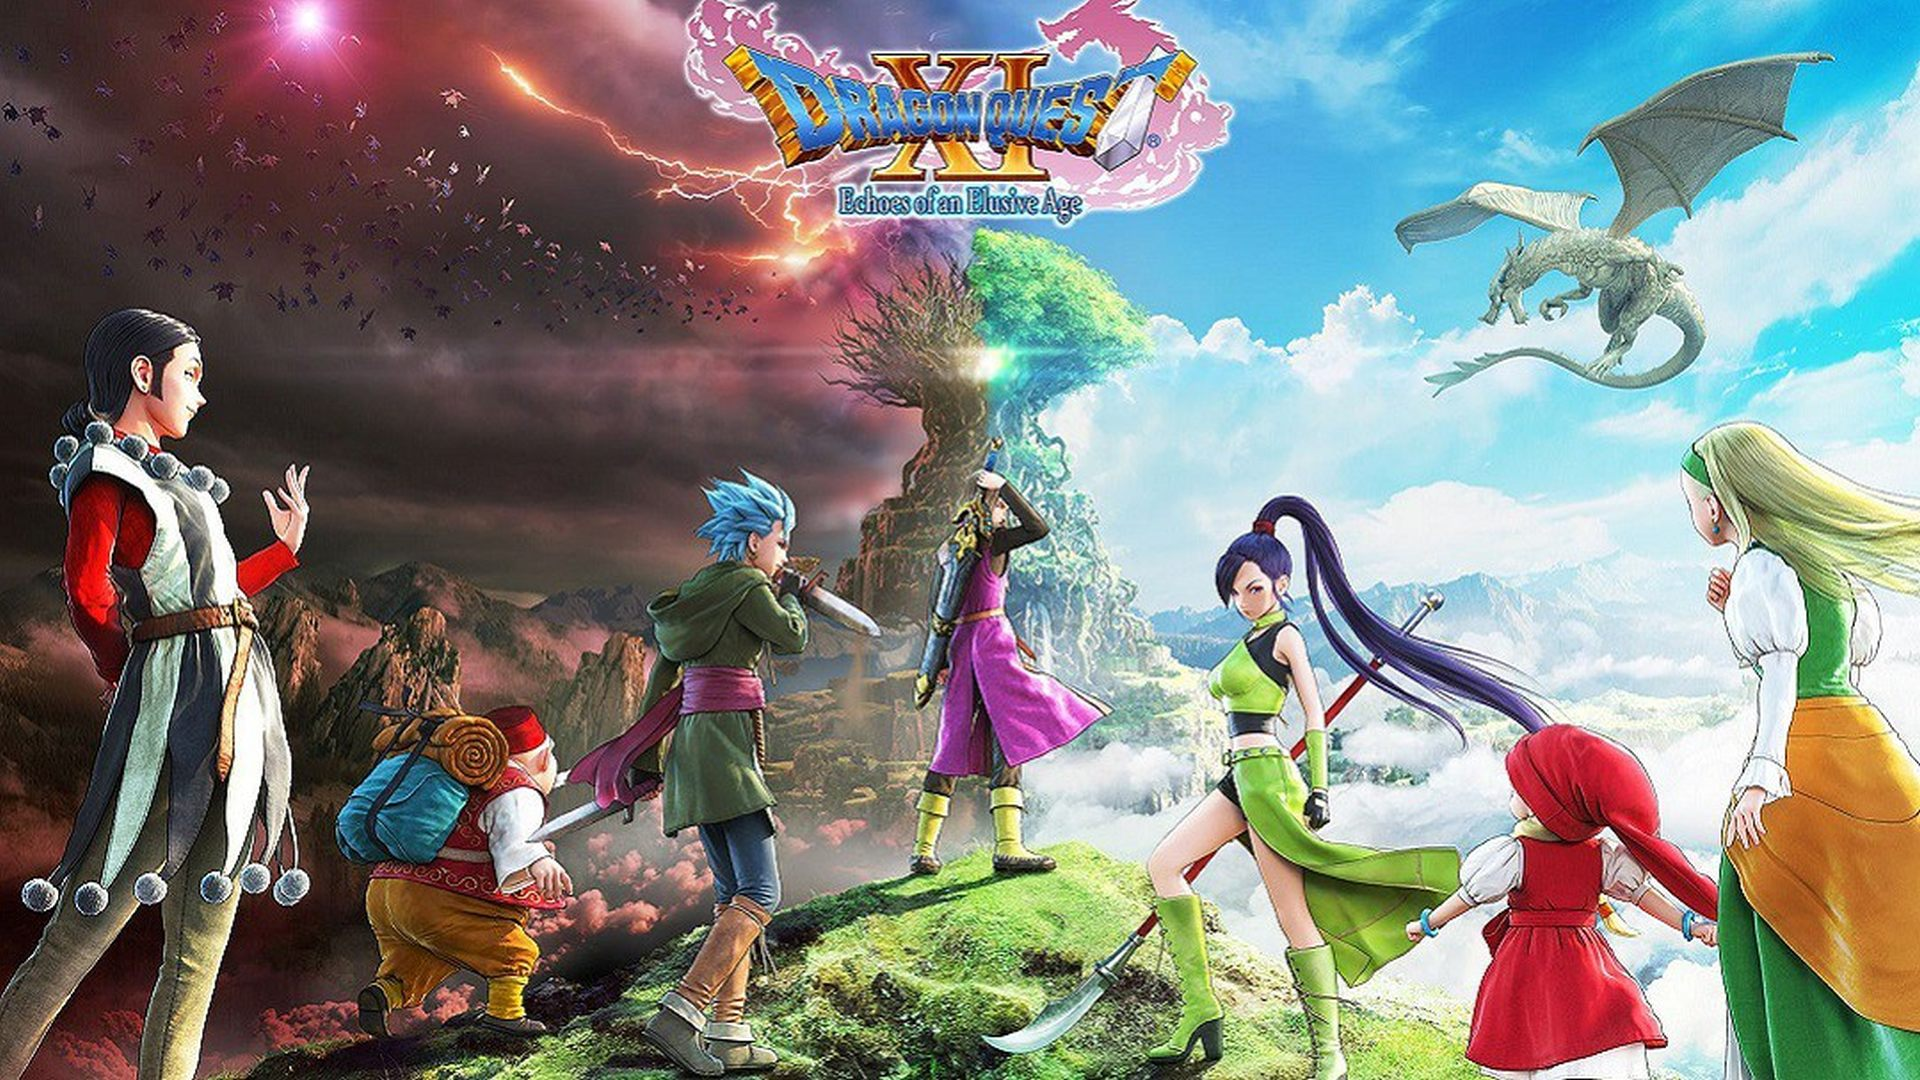 humble winter sale discounts highlights dragon quest xi 11 square enix